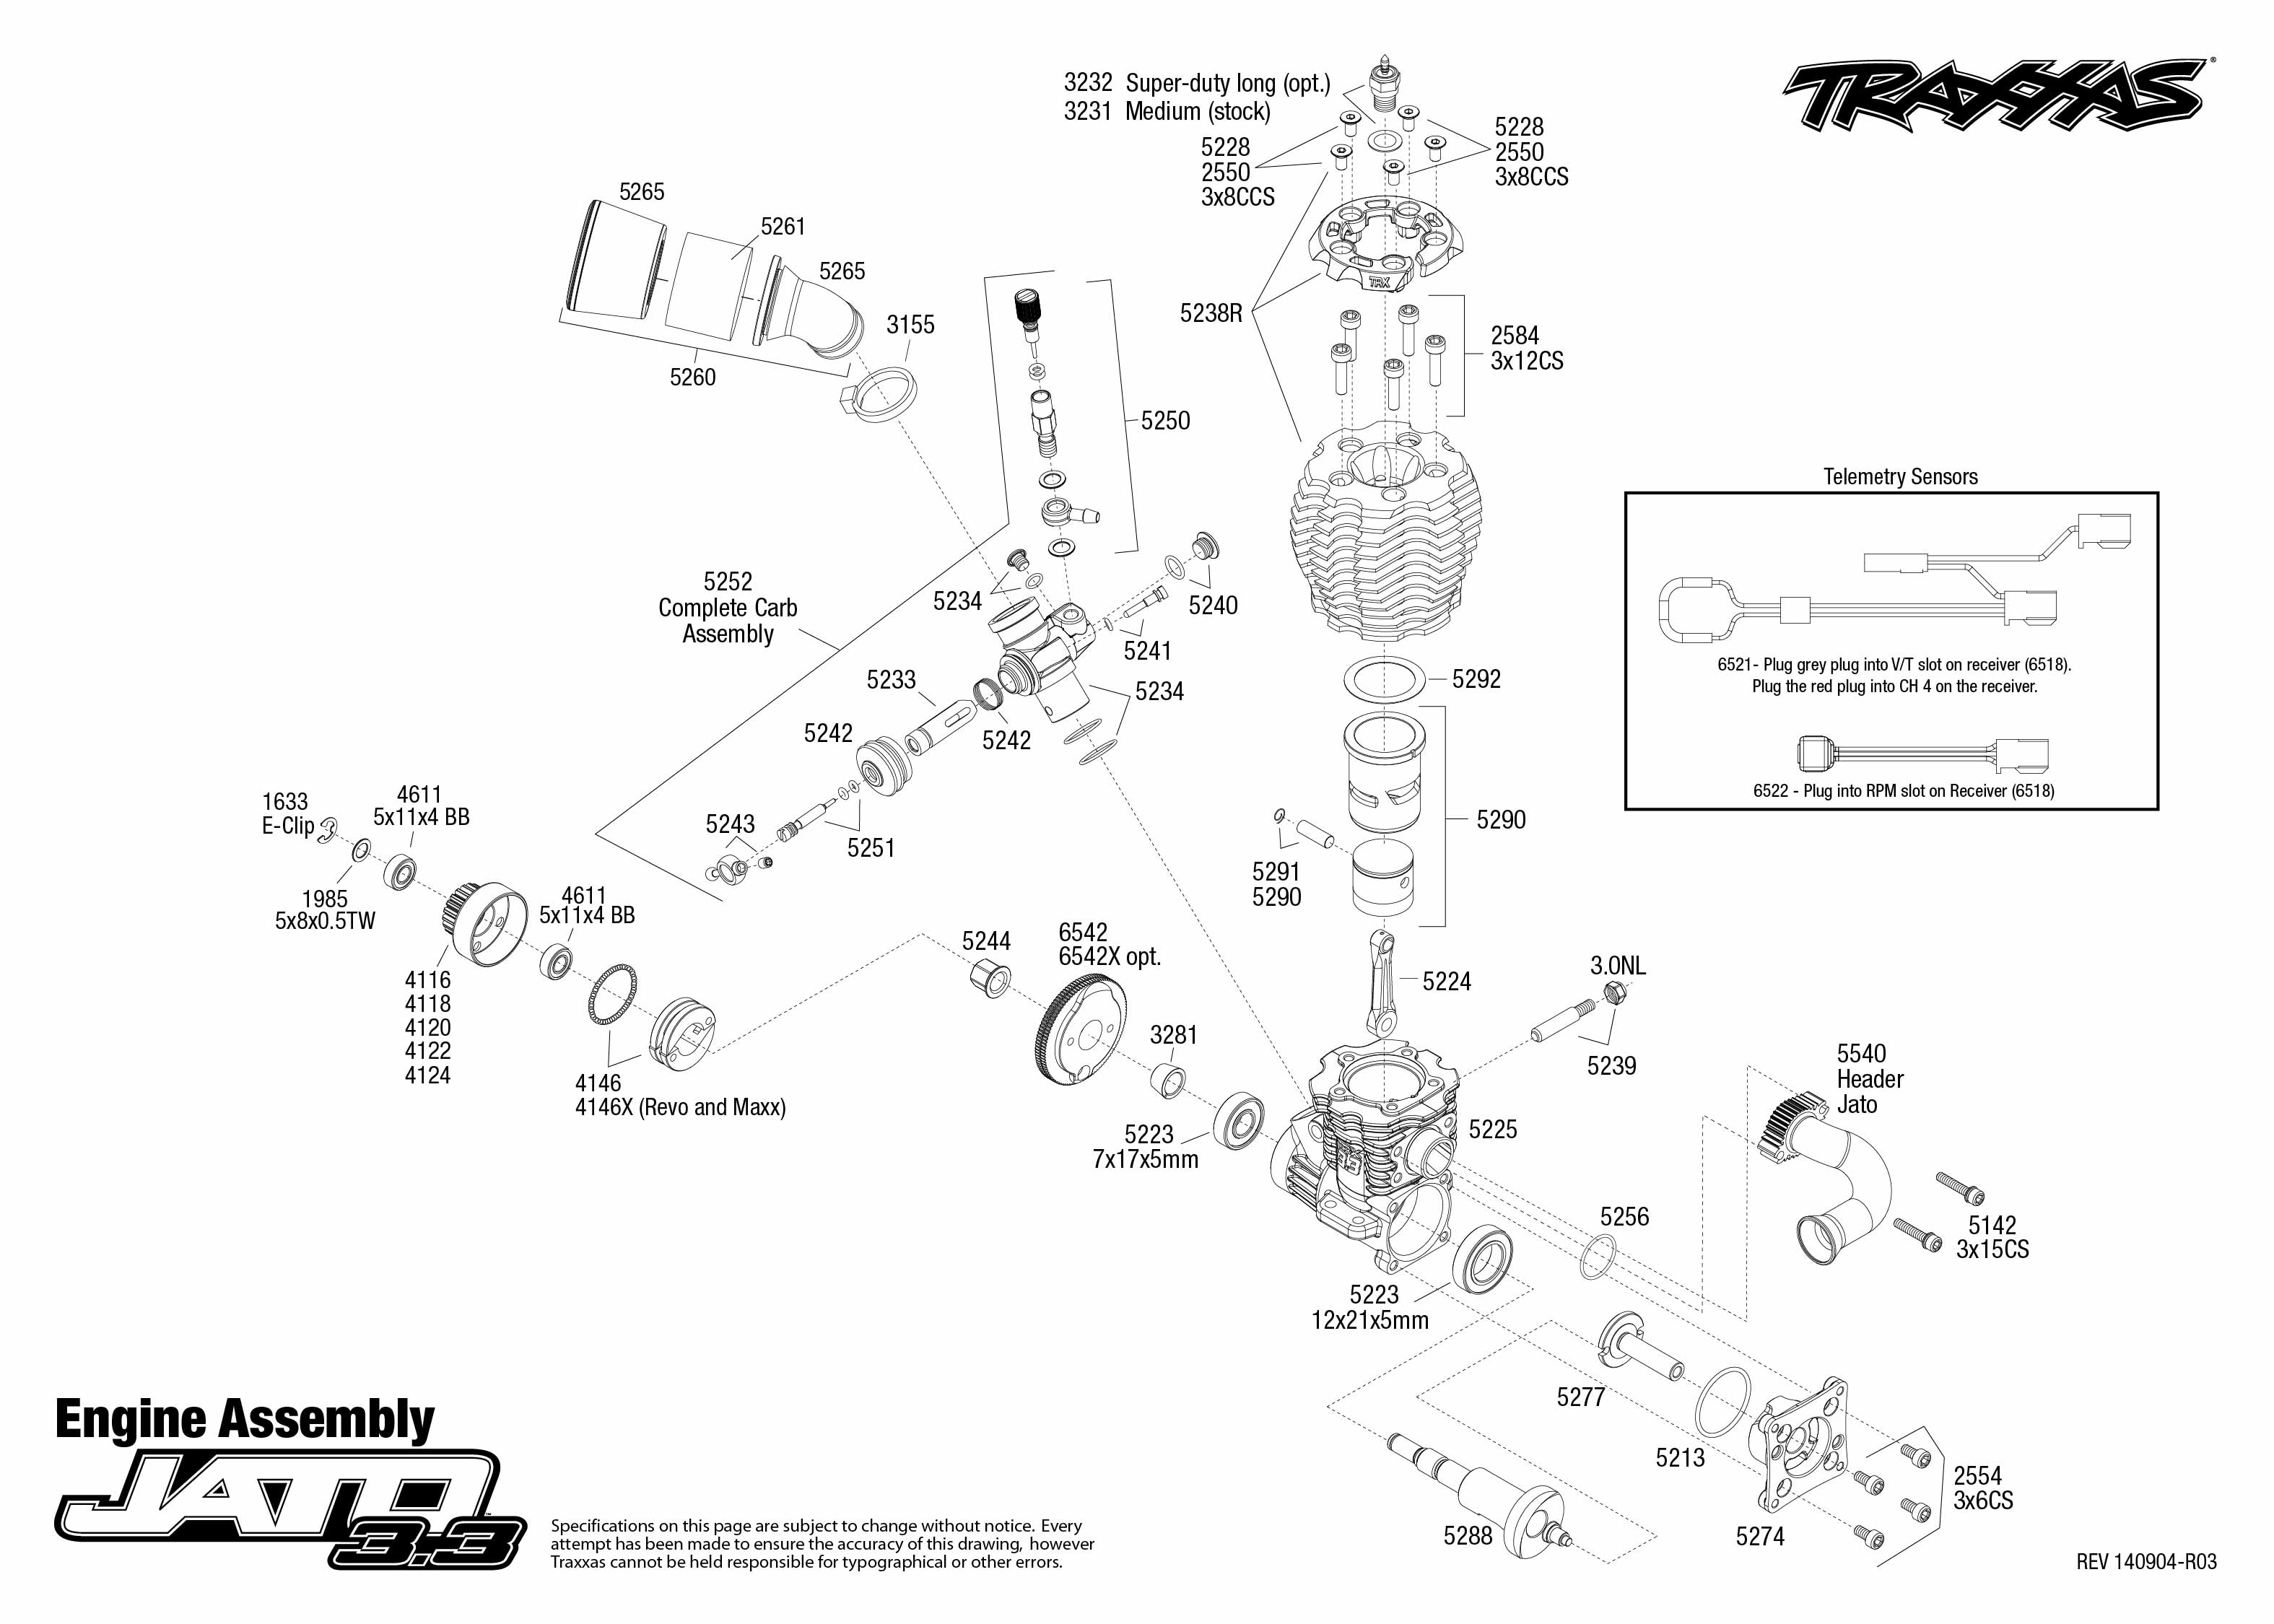 traxxas jato wiring diagram wiring diagram todays rh 15 13 13 1813weddingbarn com Traxxas Jato Transmission Diagram Traxxas Jato Parts Diagram